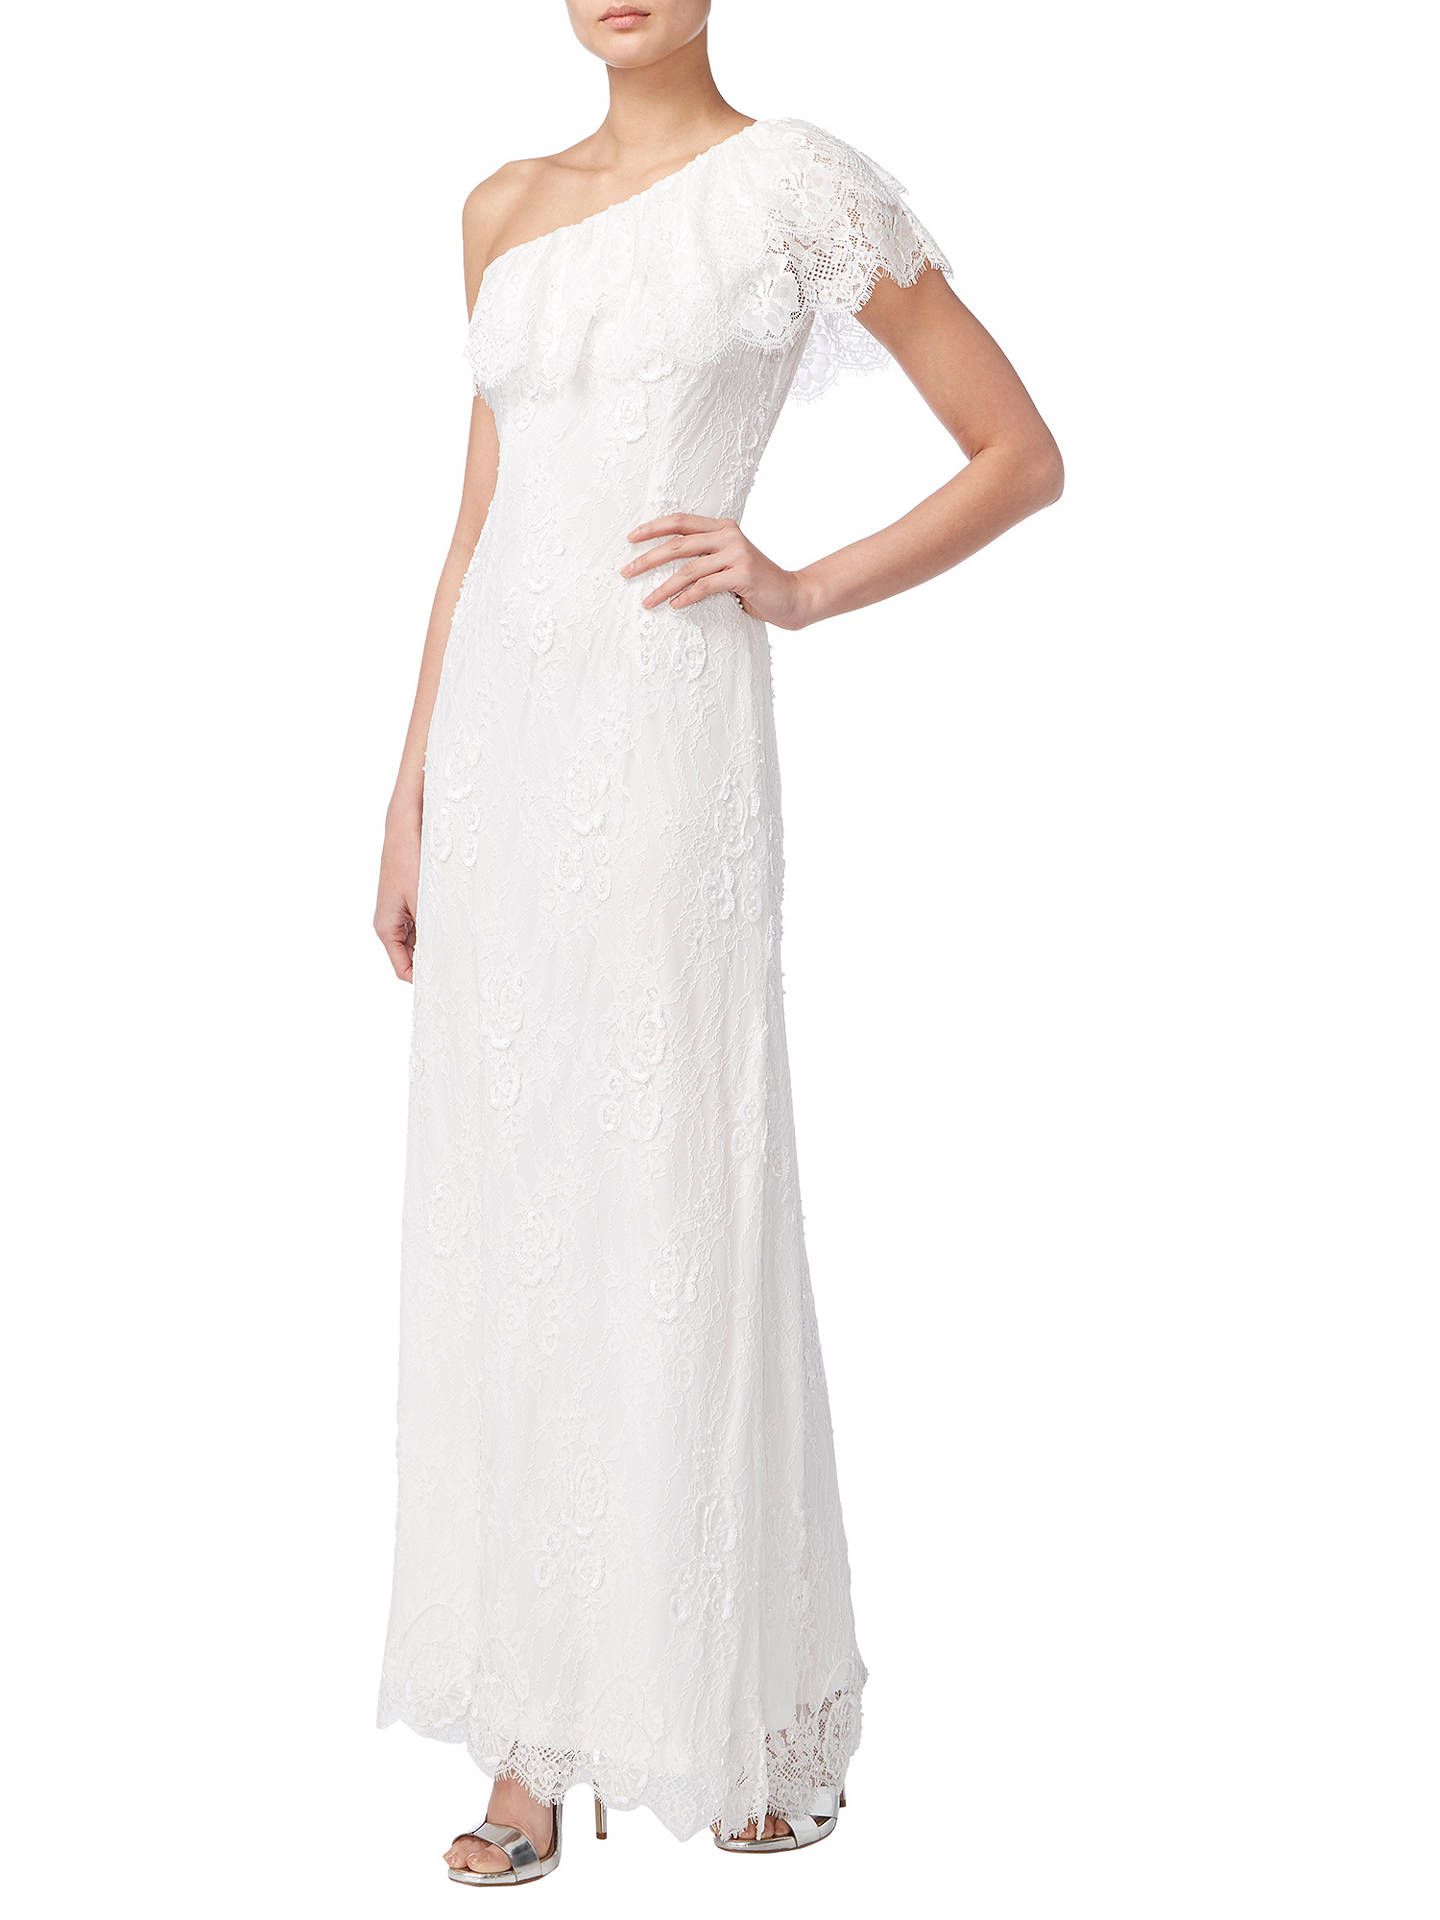 BuyRaishma One Shoulder Beaded Bridal Gown, Ivory, 8 Online at johnlewis.com